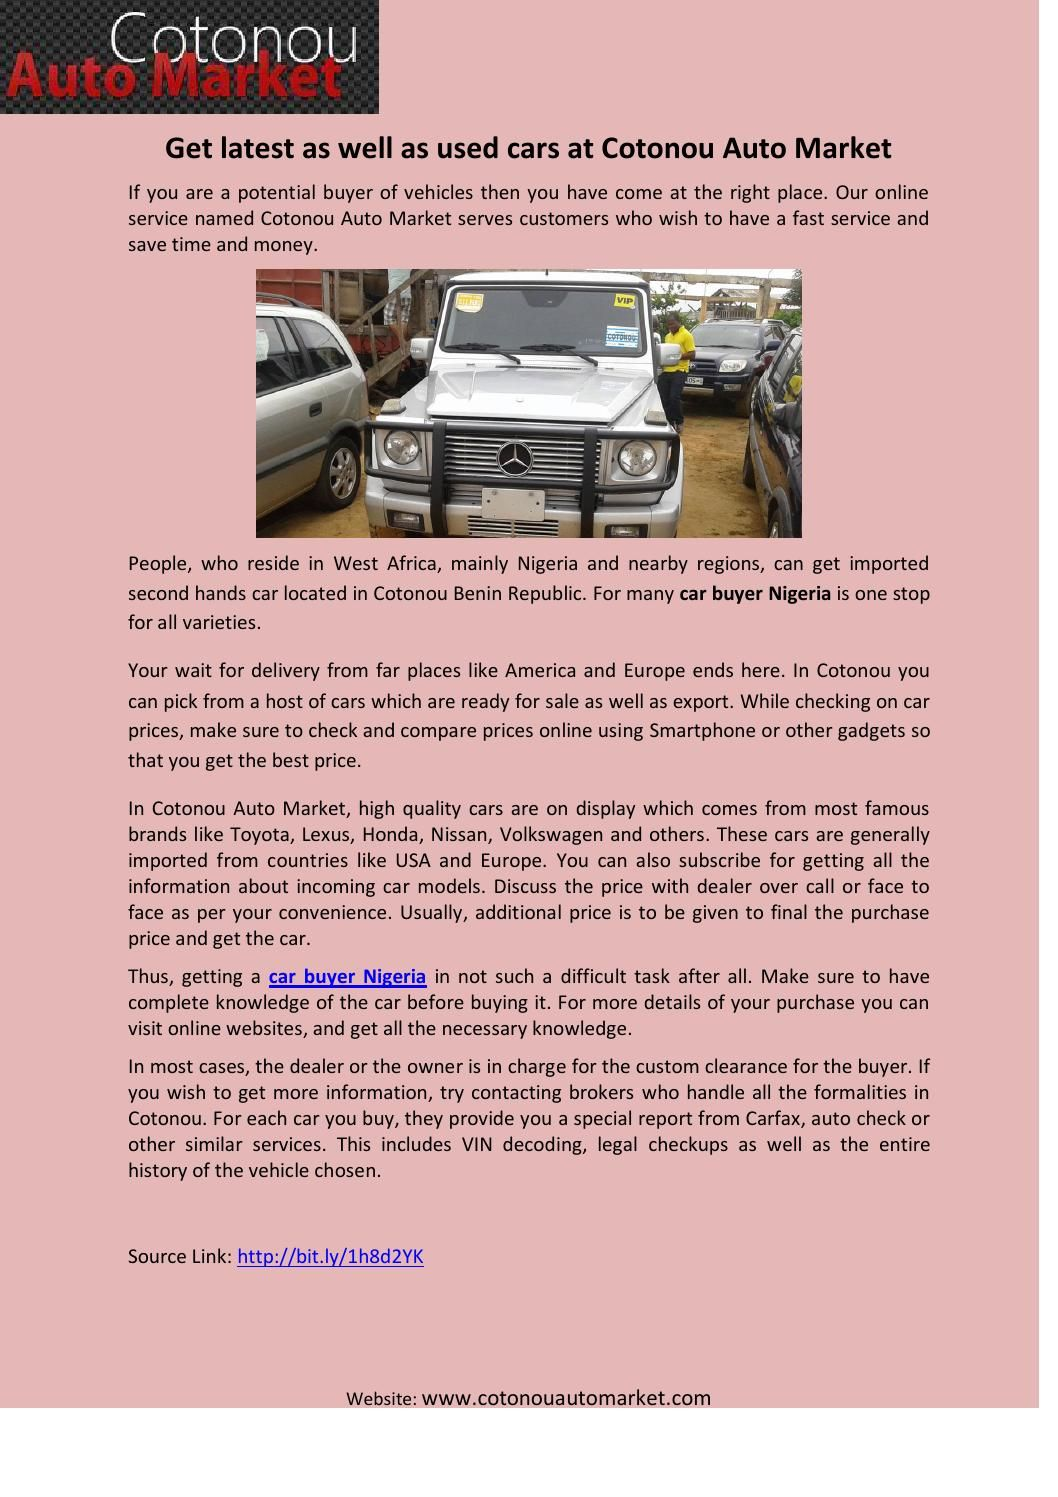 Get latest as well as used cars at Cotonou Auto Market